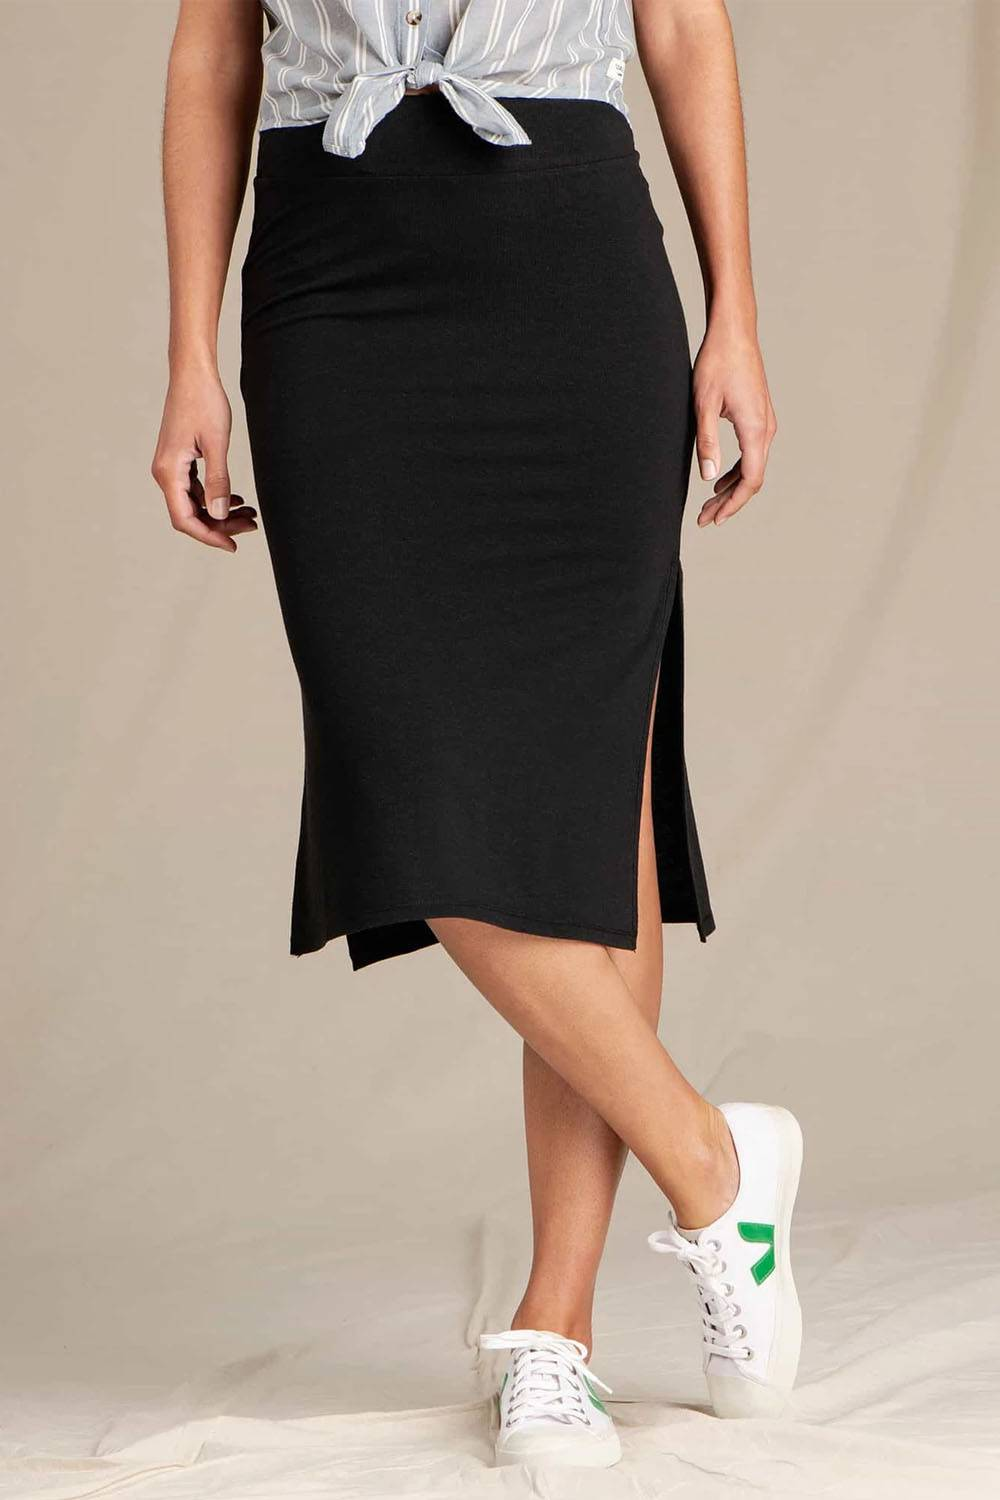 toad and co pencil skirt